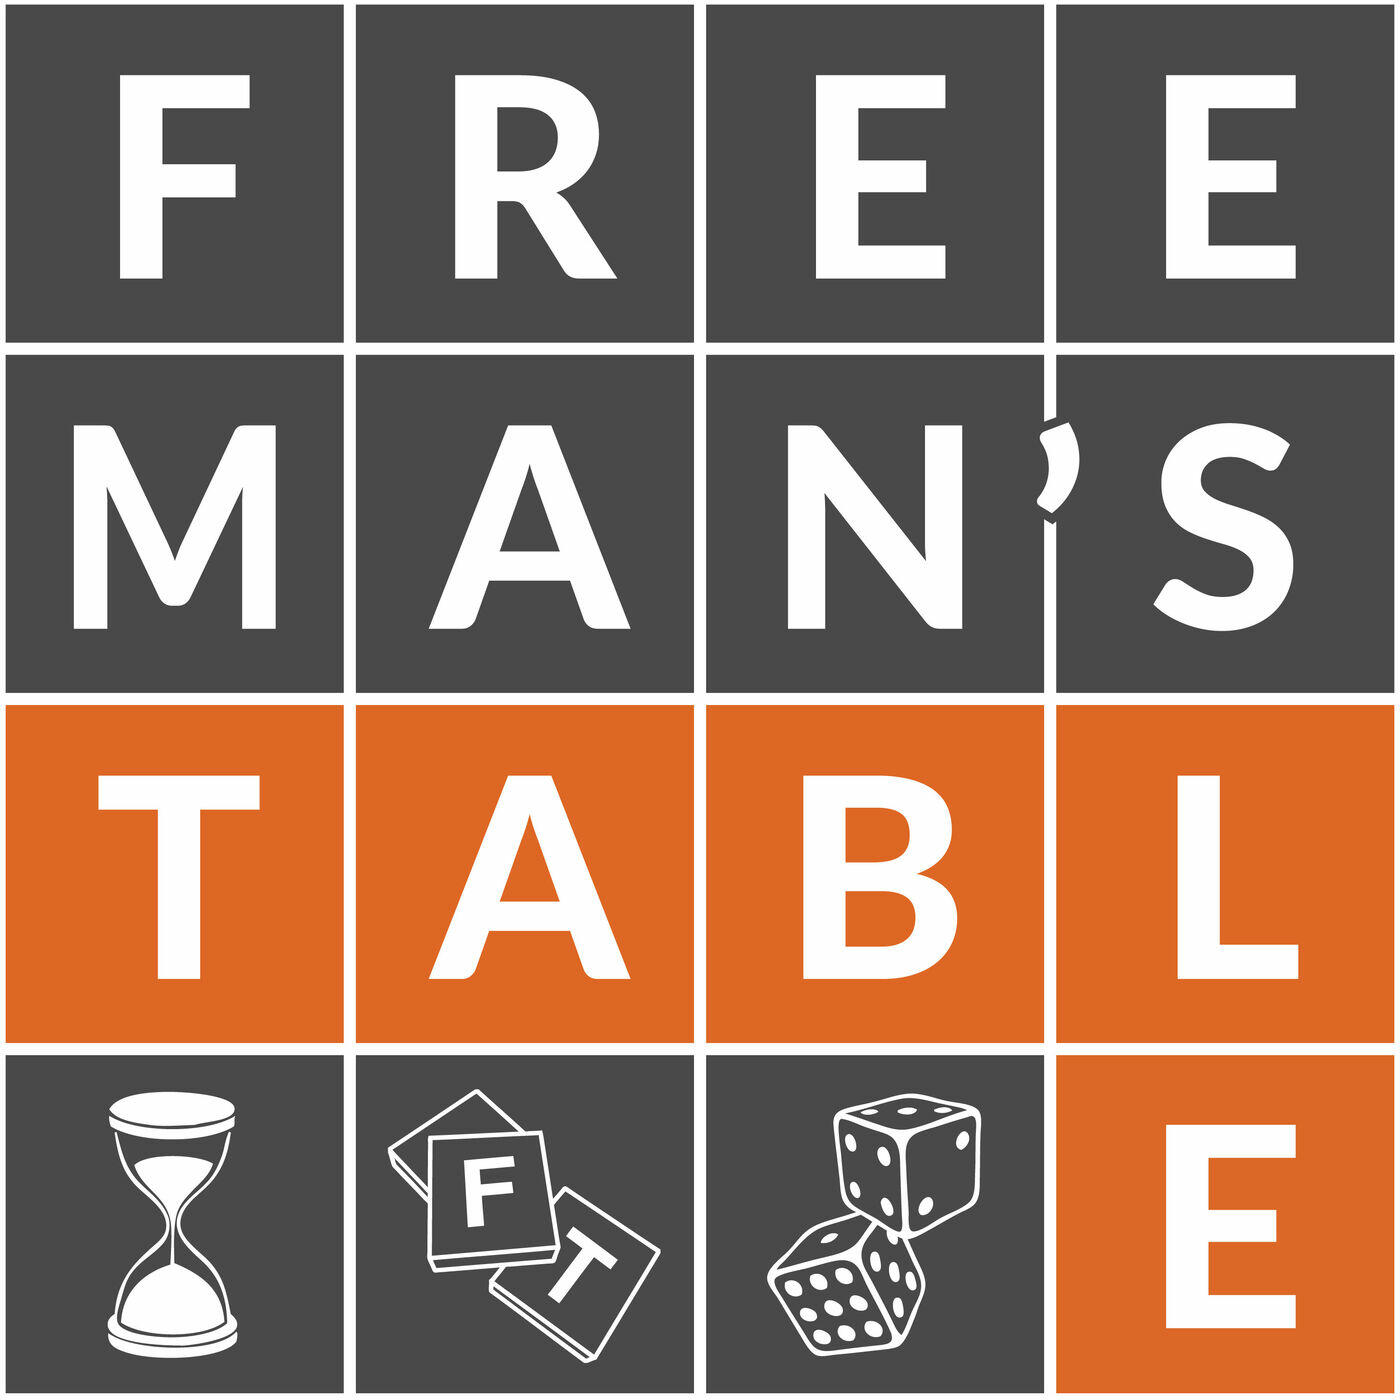 Freeman's Table